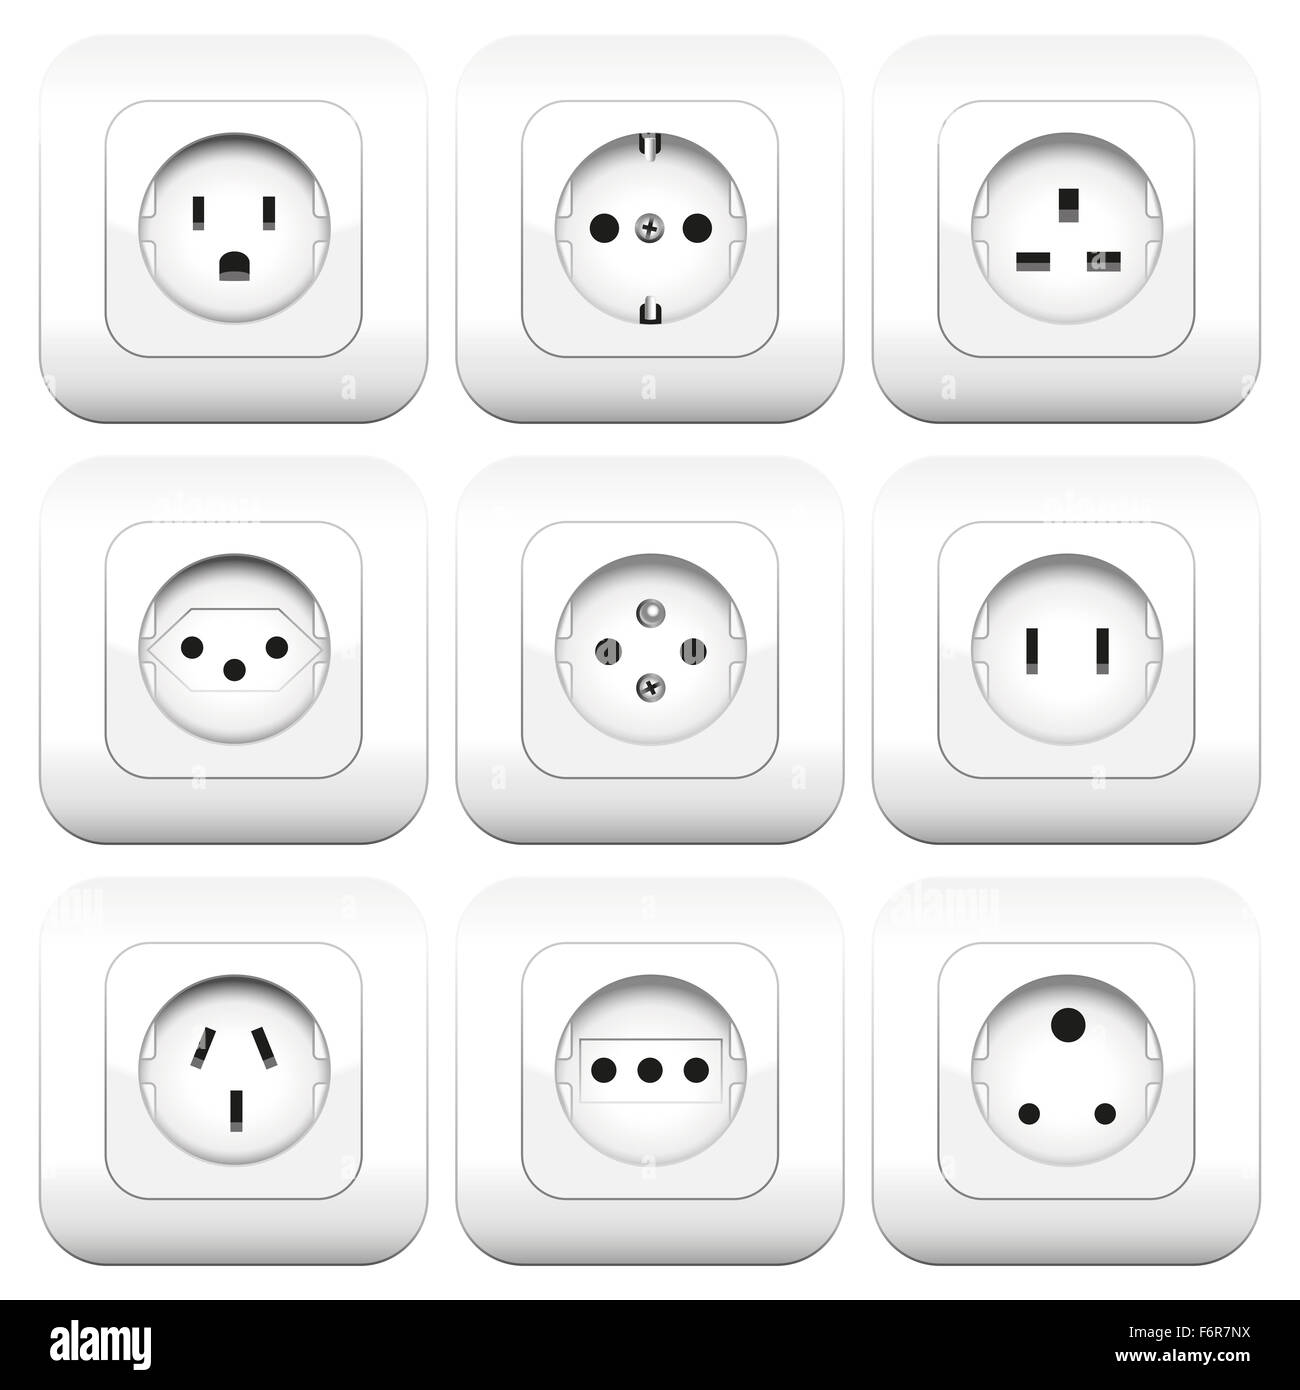 Sockets - different types - worldwide varieties. Illustration over white background. - Stock Image